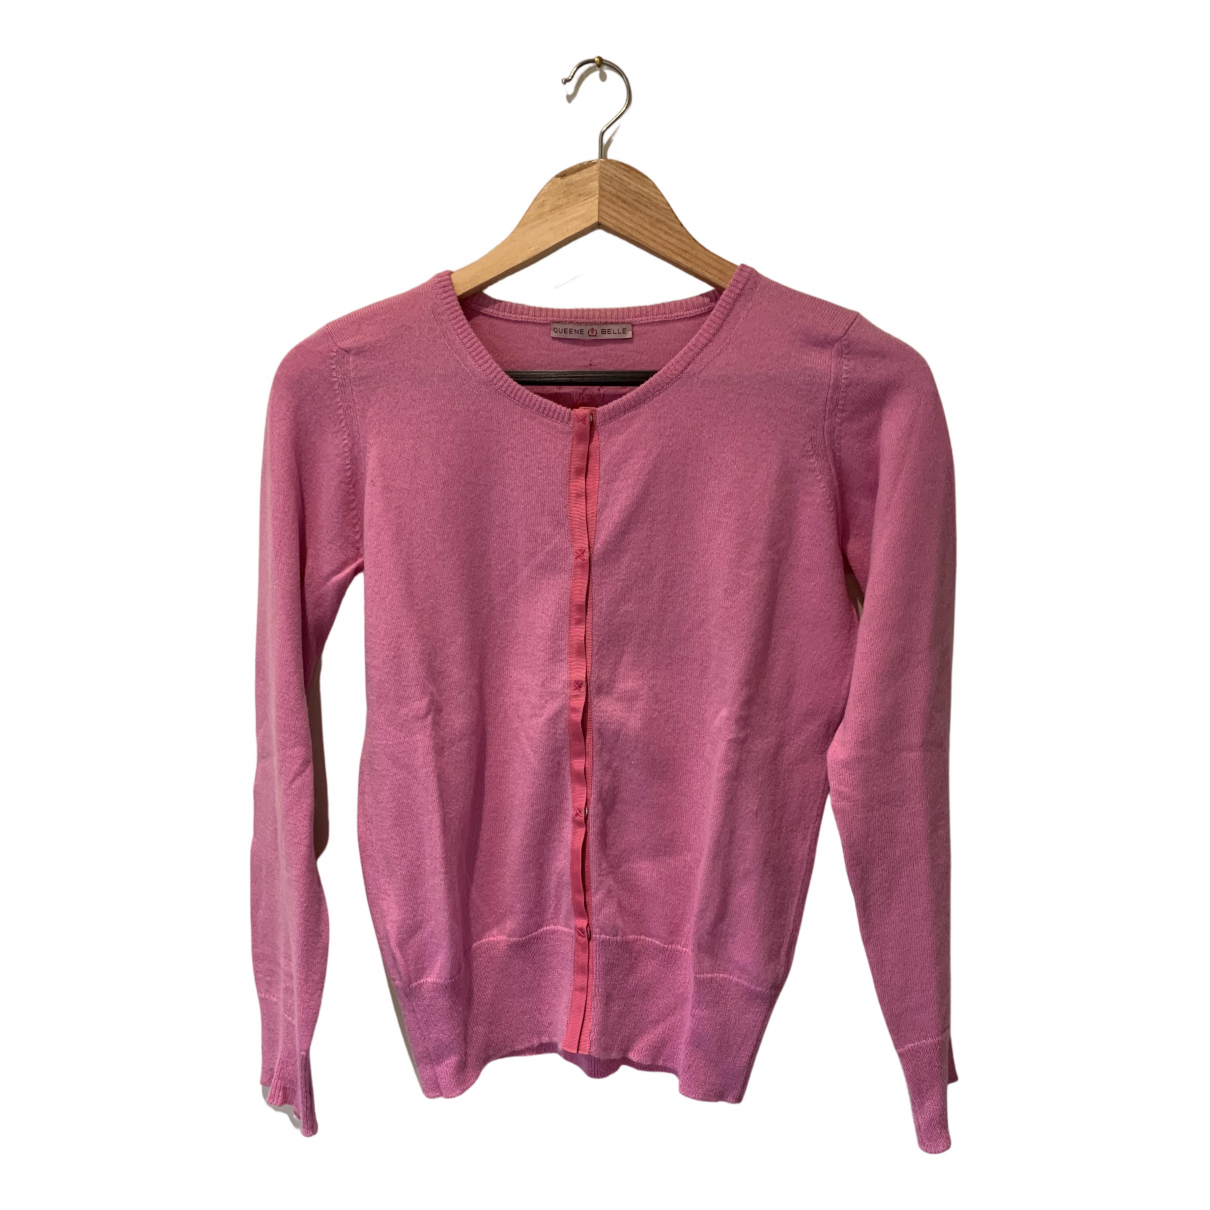 Queene And Belle N Pink Cashmere Knitwear for Women S International